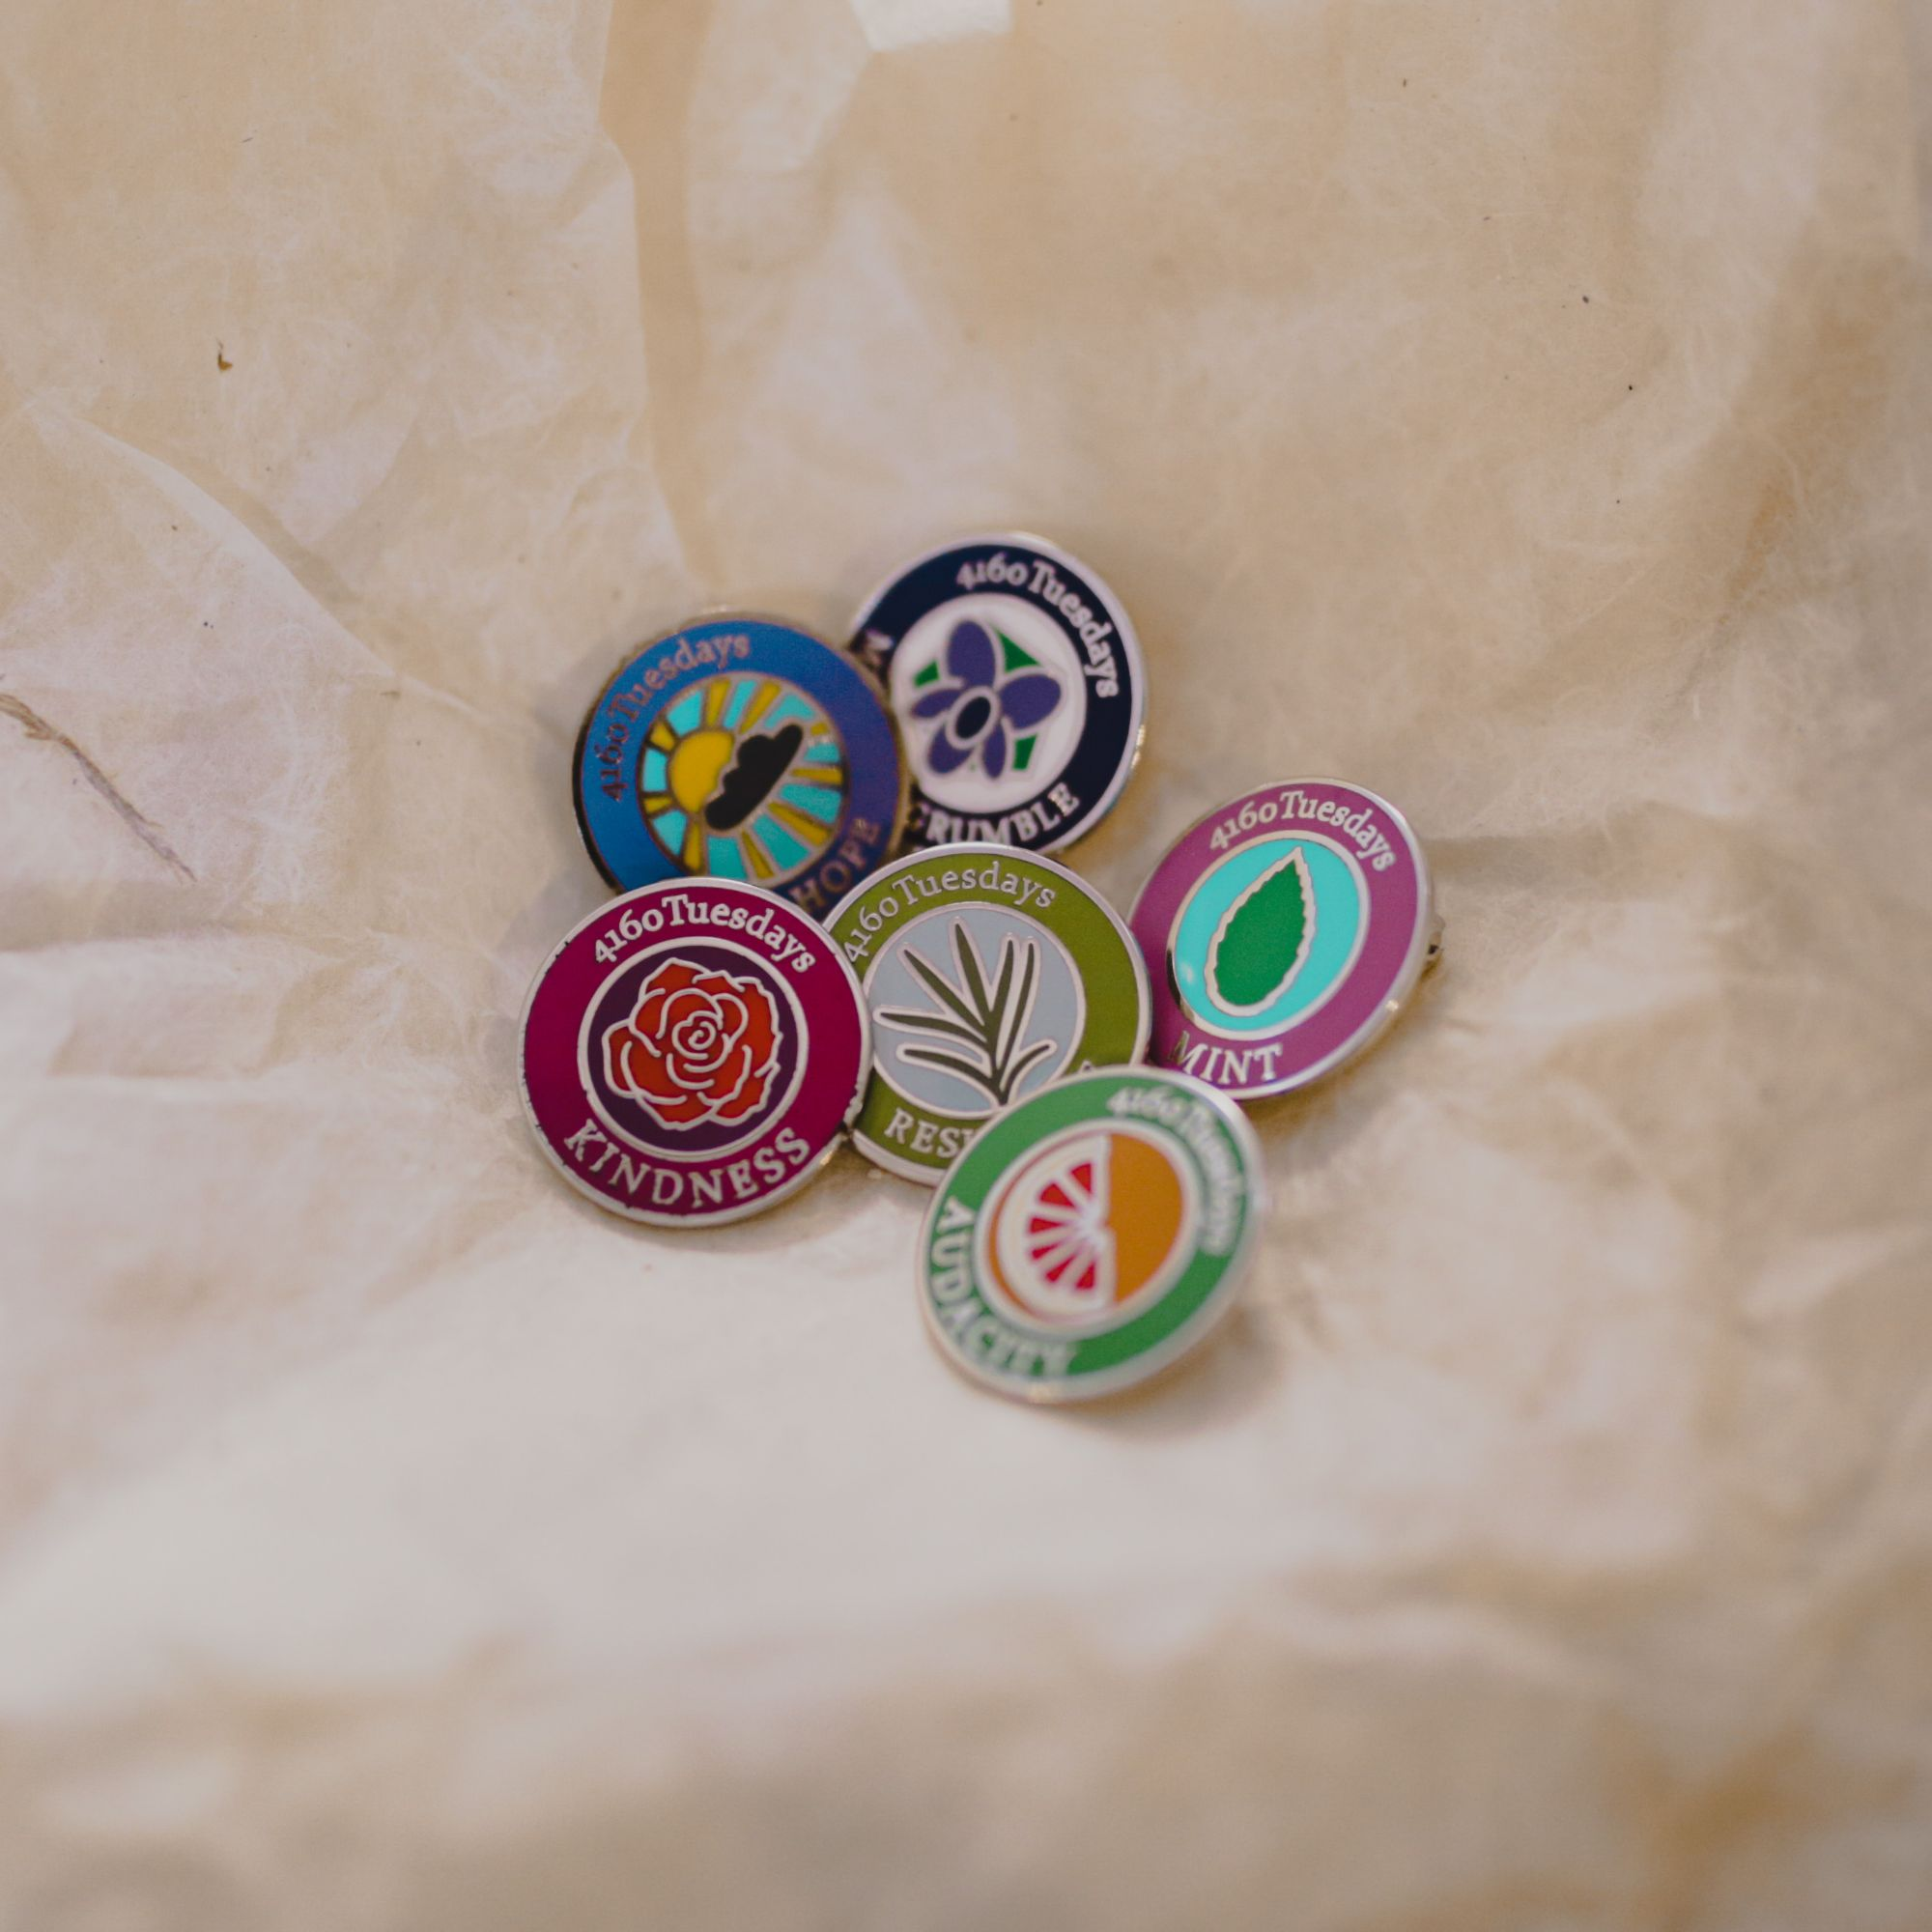 A selection of 6 4160 Tuesdays badges